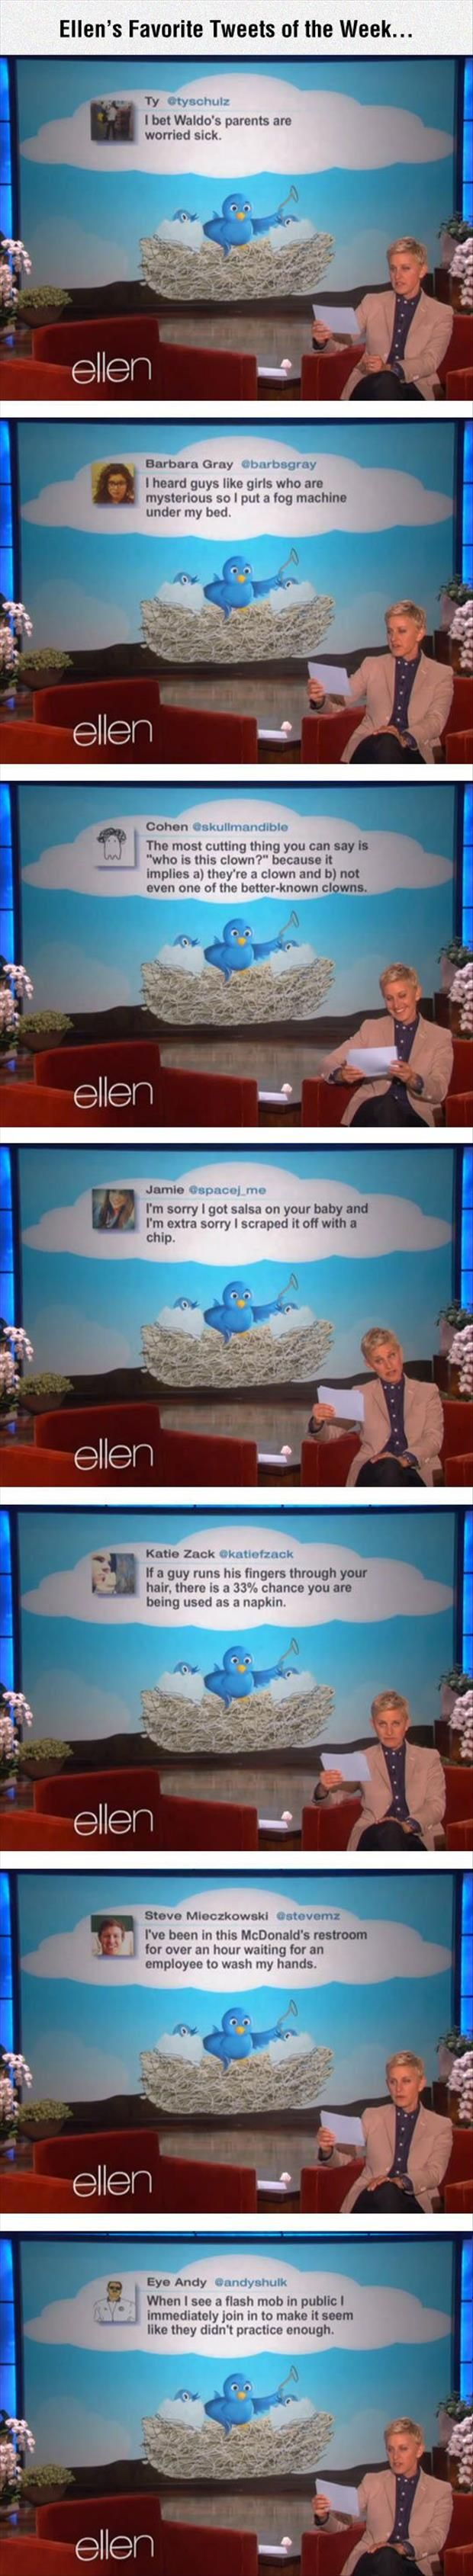 Quotes about being sick in bed funny quotes about being sick in bed - Ellen Degeneres S Favorite Tweets Of The Week 15 Pics